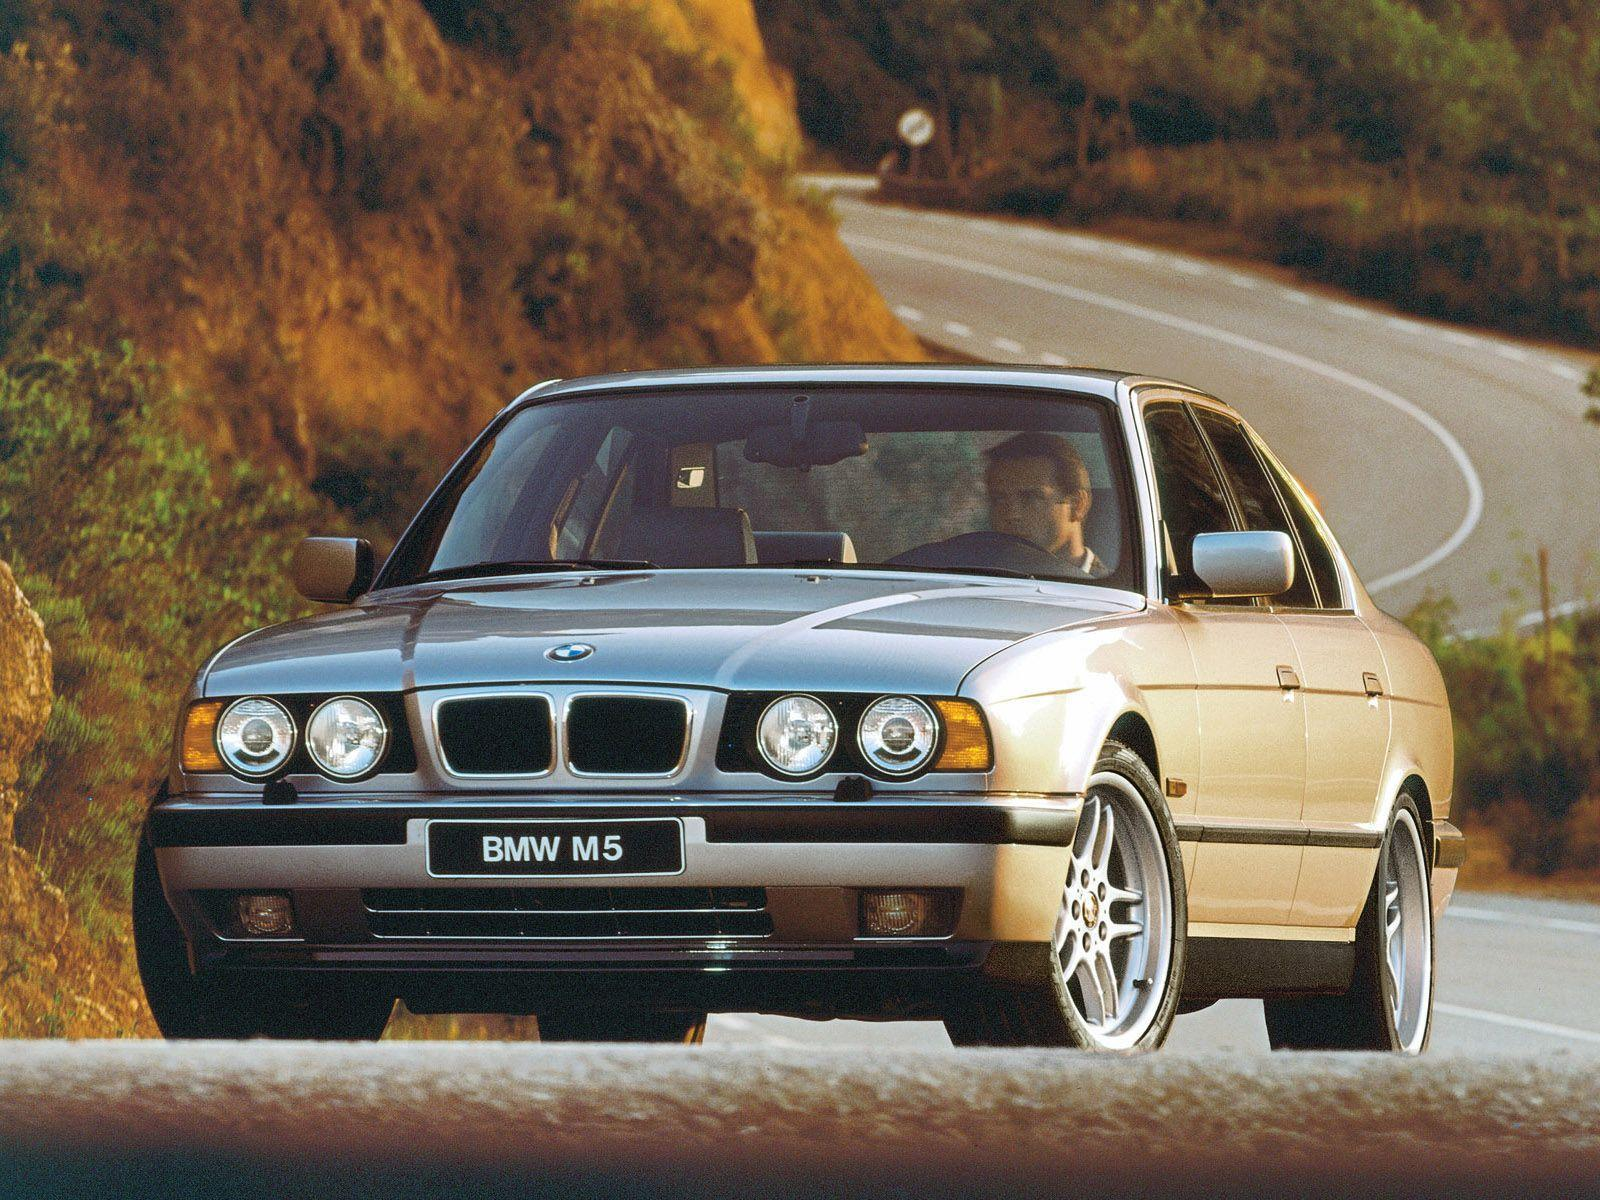 bmw e34 cars m5 1994 sedan 90s series 1988 wallpapers 530i touring 5er auto defined 525i luxury specification 1996 1995